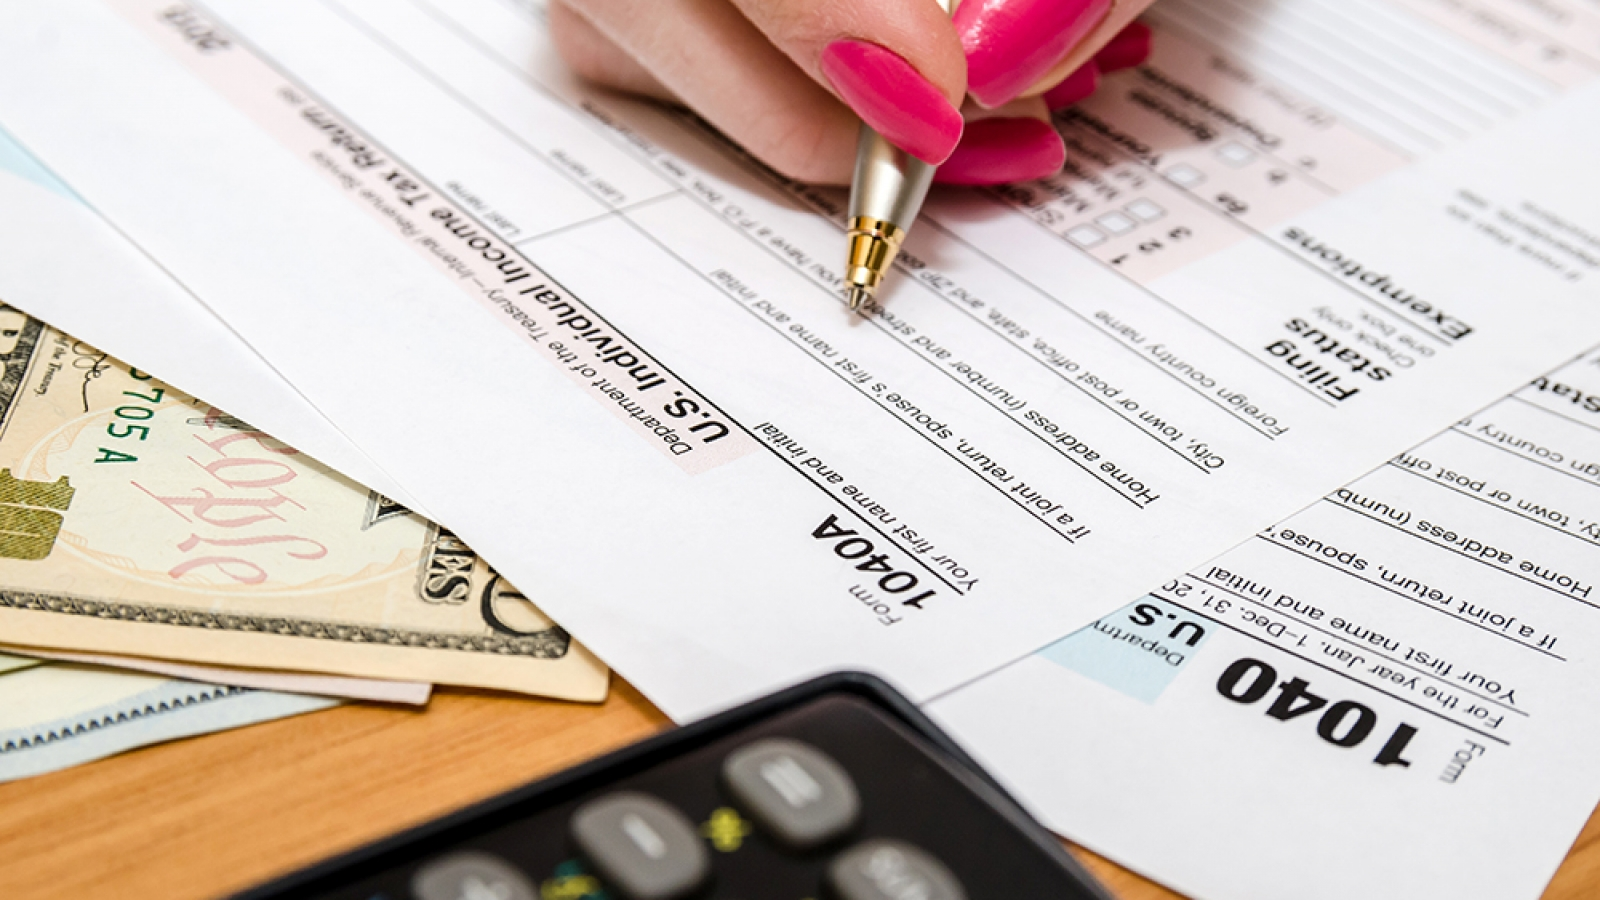 a female hand holding a pen filling out a tax form